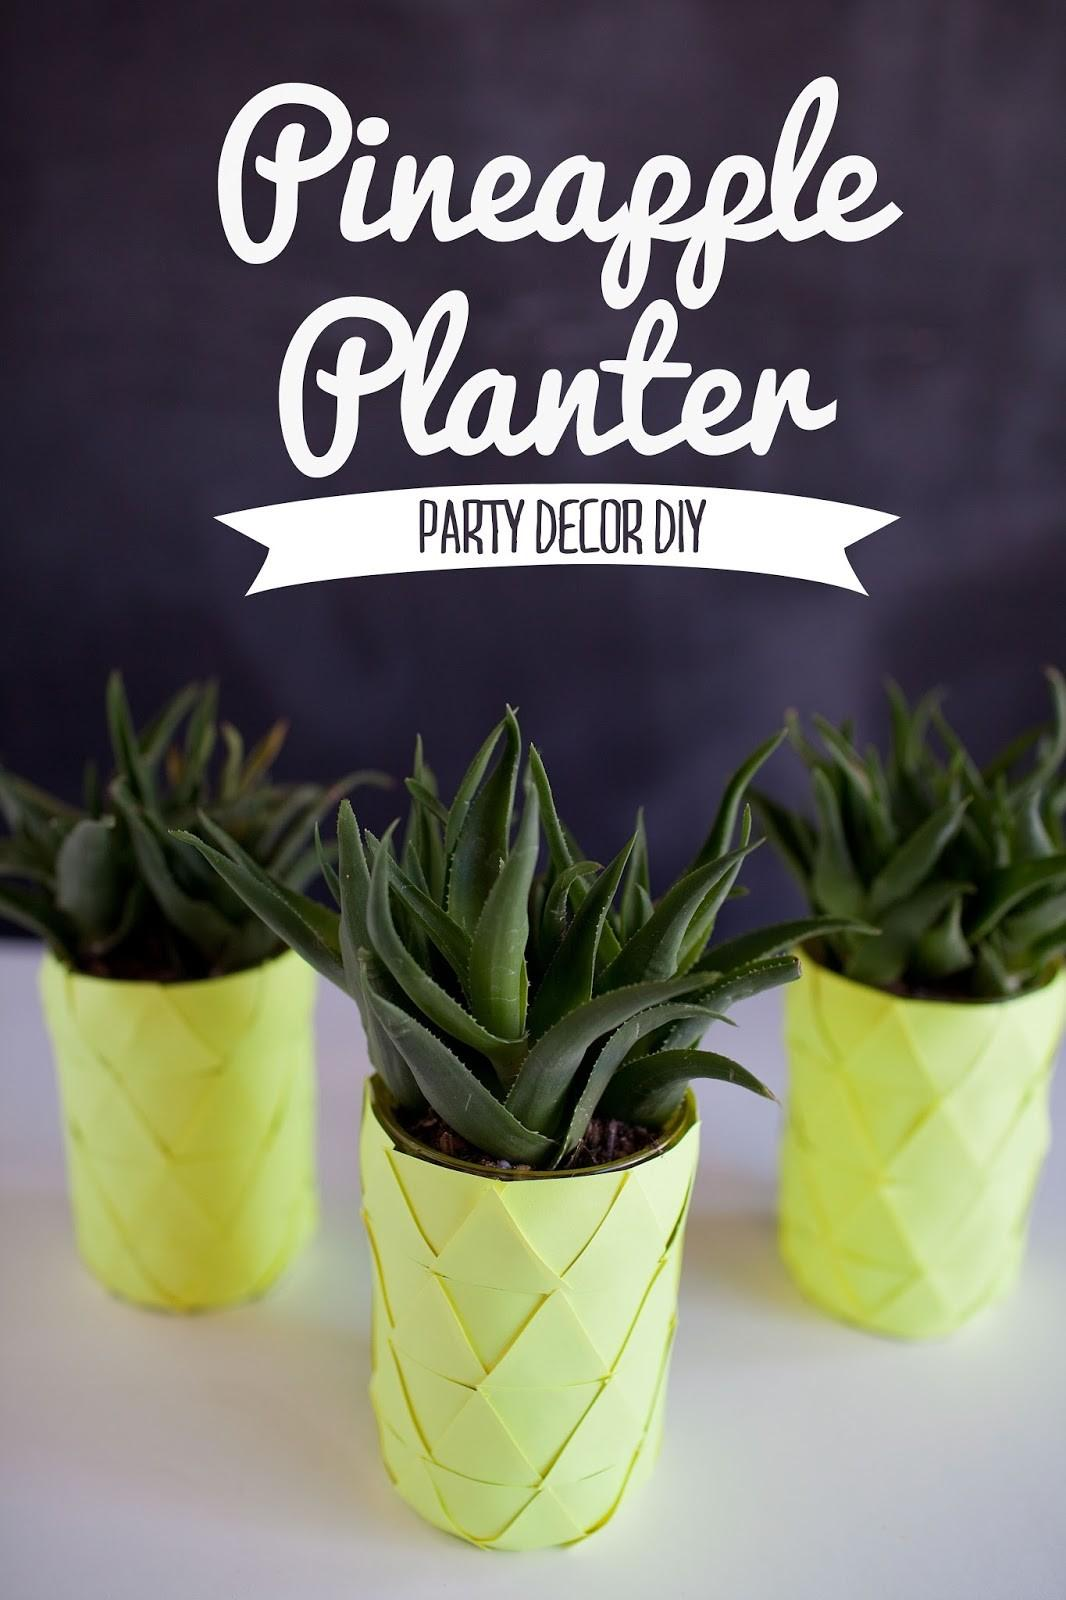 Tell Pineapple Planter Love Party